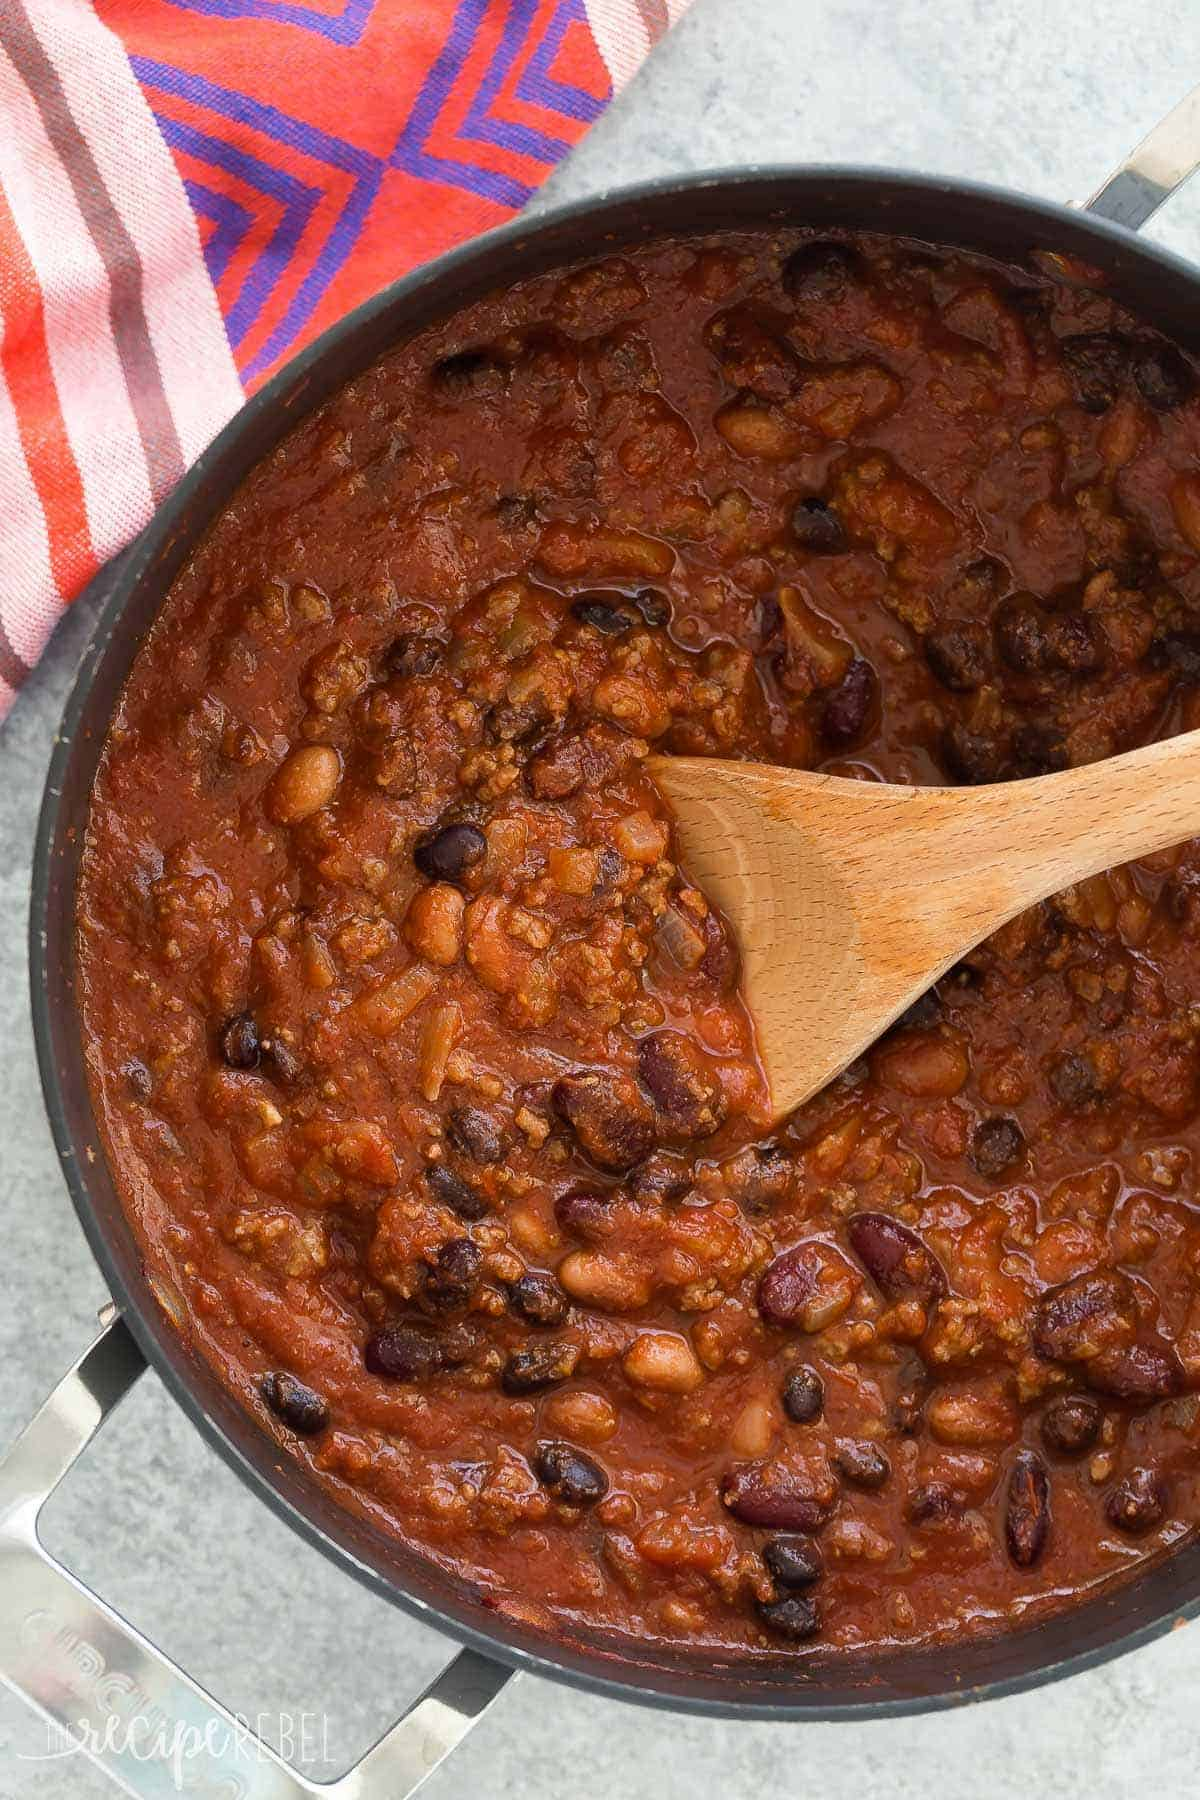 This Slow Cooker Three Bean Beef Chili is a hearty, but so easy protein loaded meal for any night of the week! A microwave shortcut makes makes it a one pot meal and cuts down on prep time. Includes how to recipe video. | crockpot recipe | crock pot | chili recipe | beef recipe |